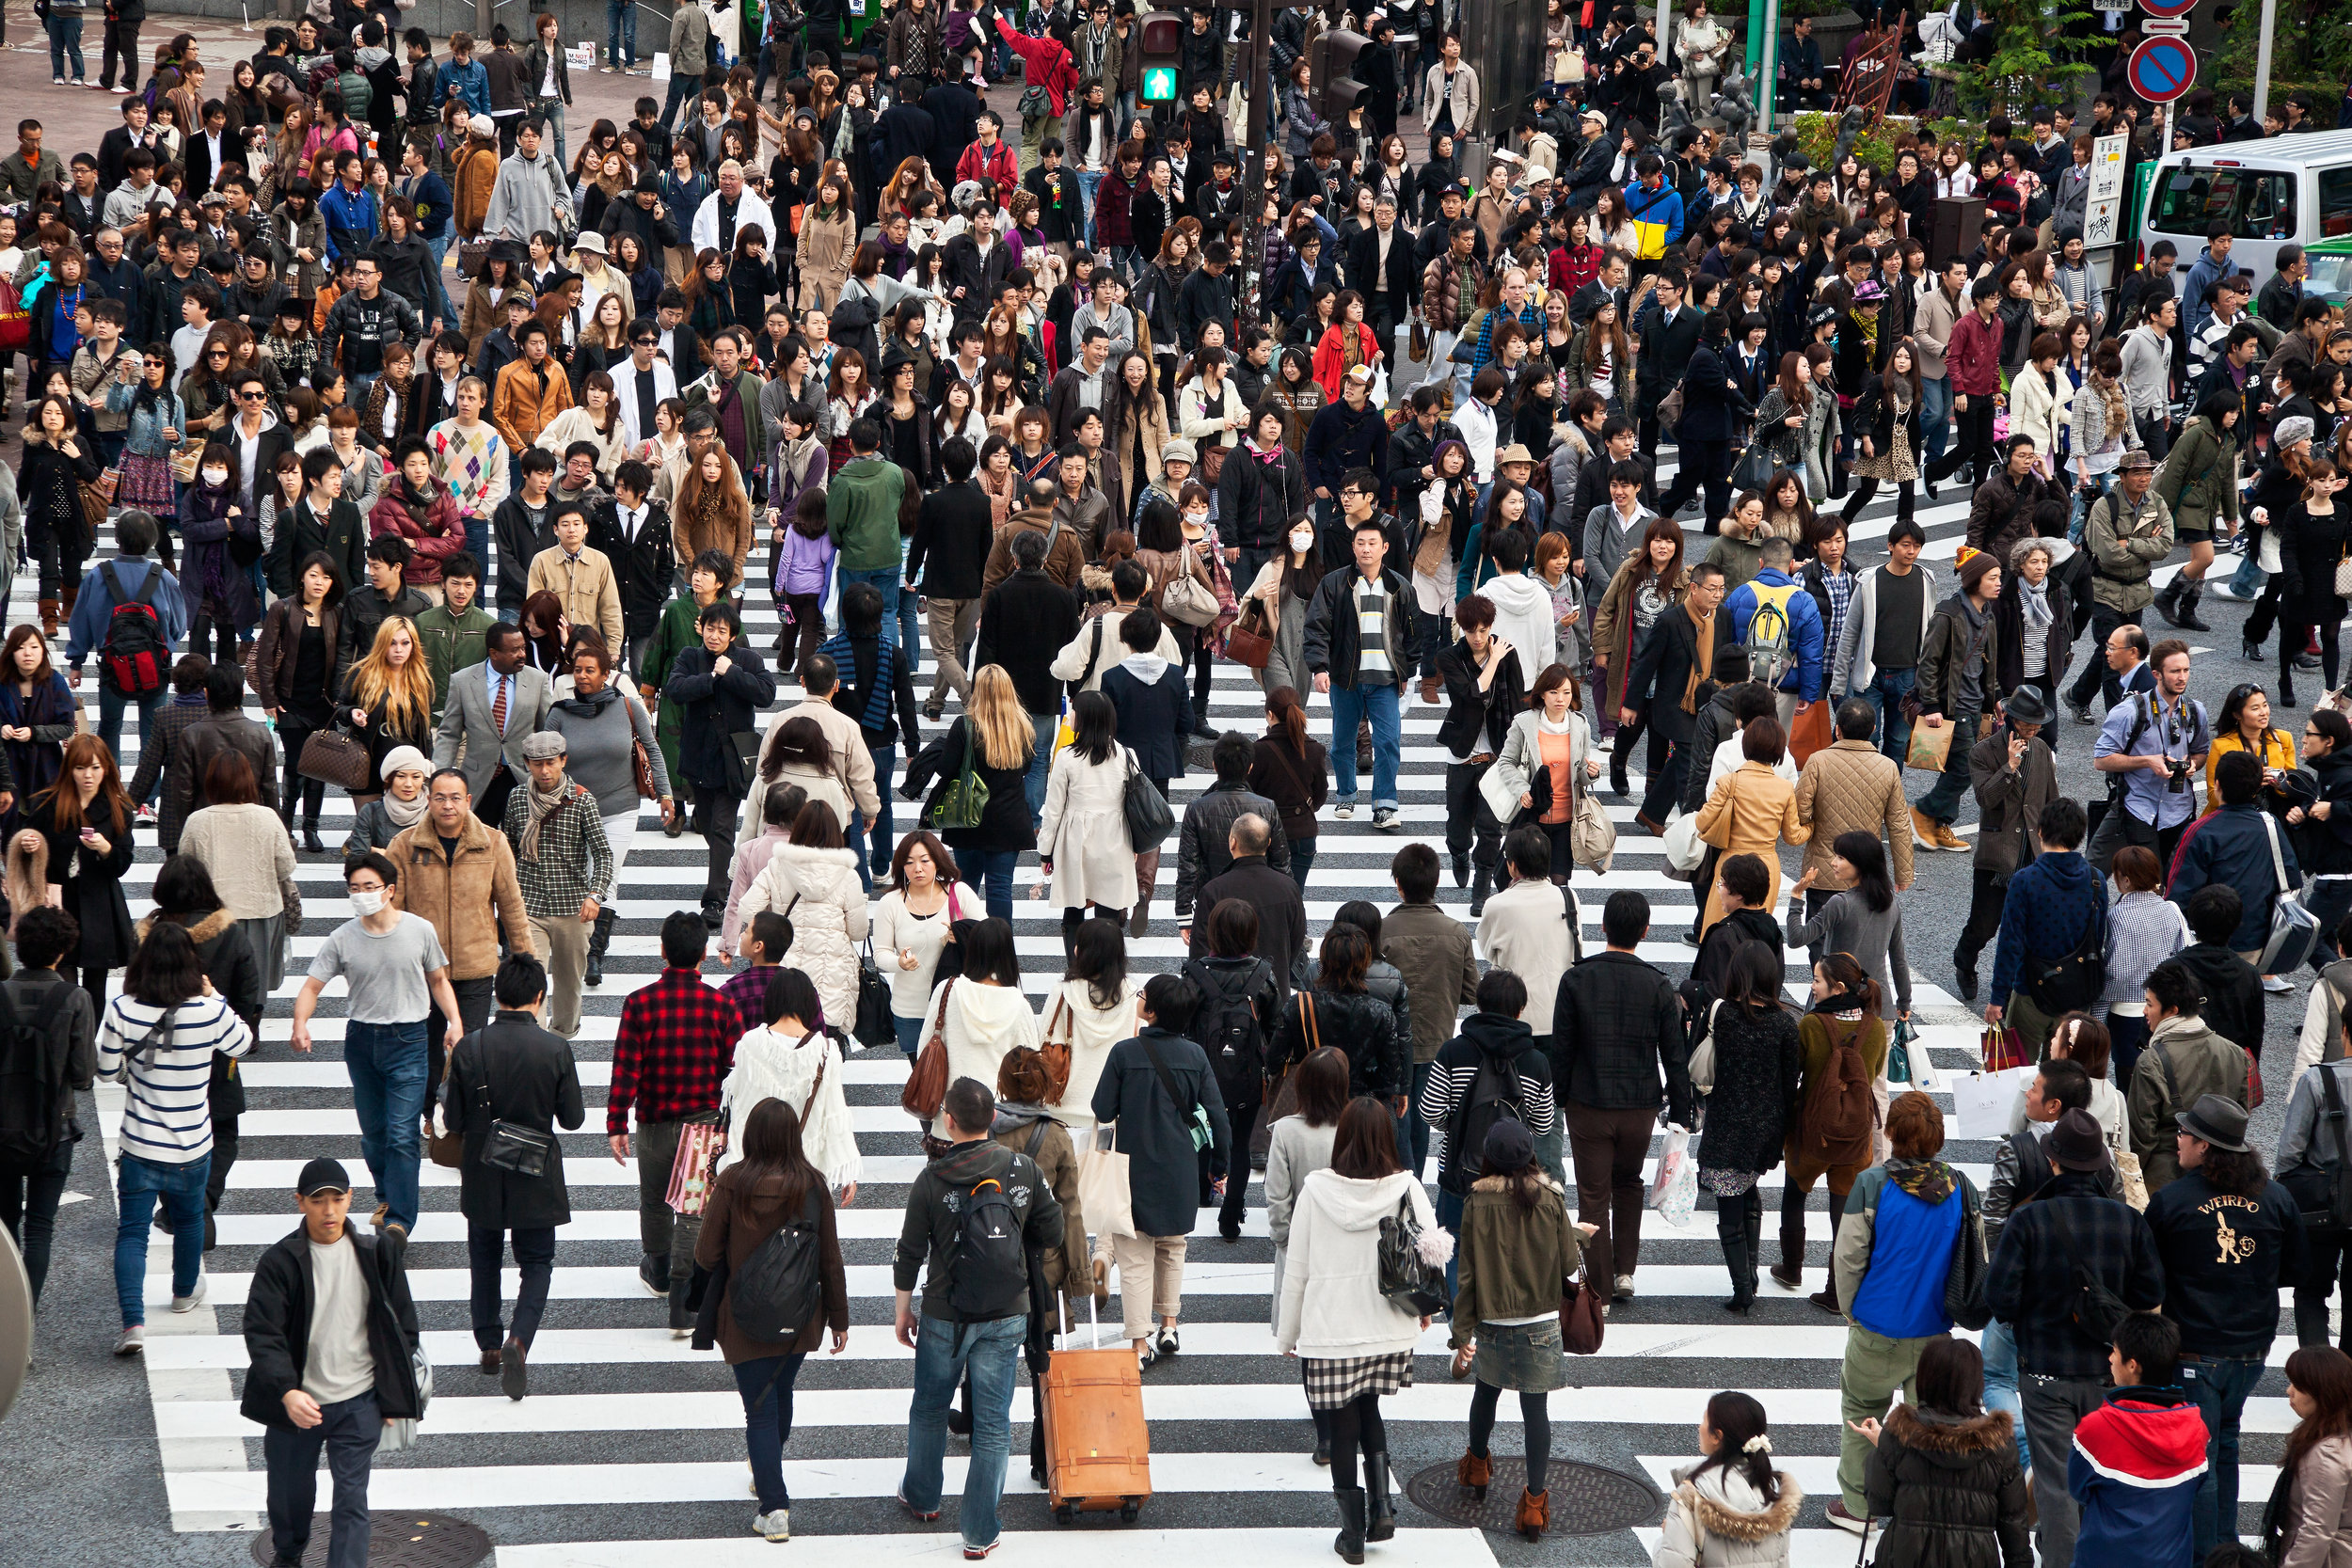 [Pedestrians at Shibuya crossing in Tokyo, Japan (the famous scramble crosswalk is used by over 2.5 million people daily) Photo credit: Thomas La Mela/Shutterstock.com]